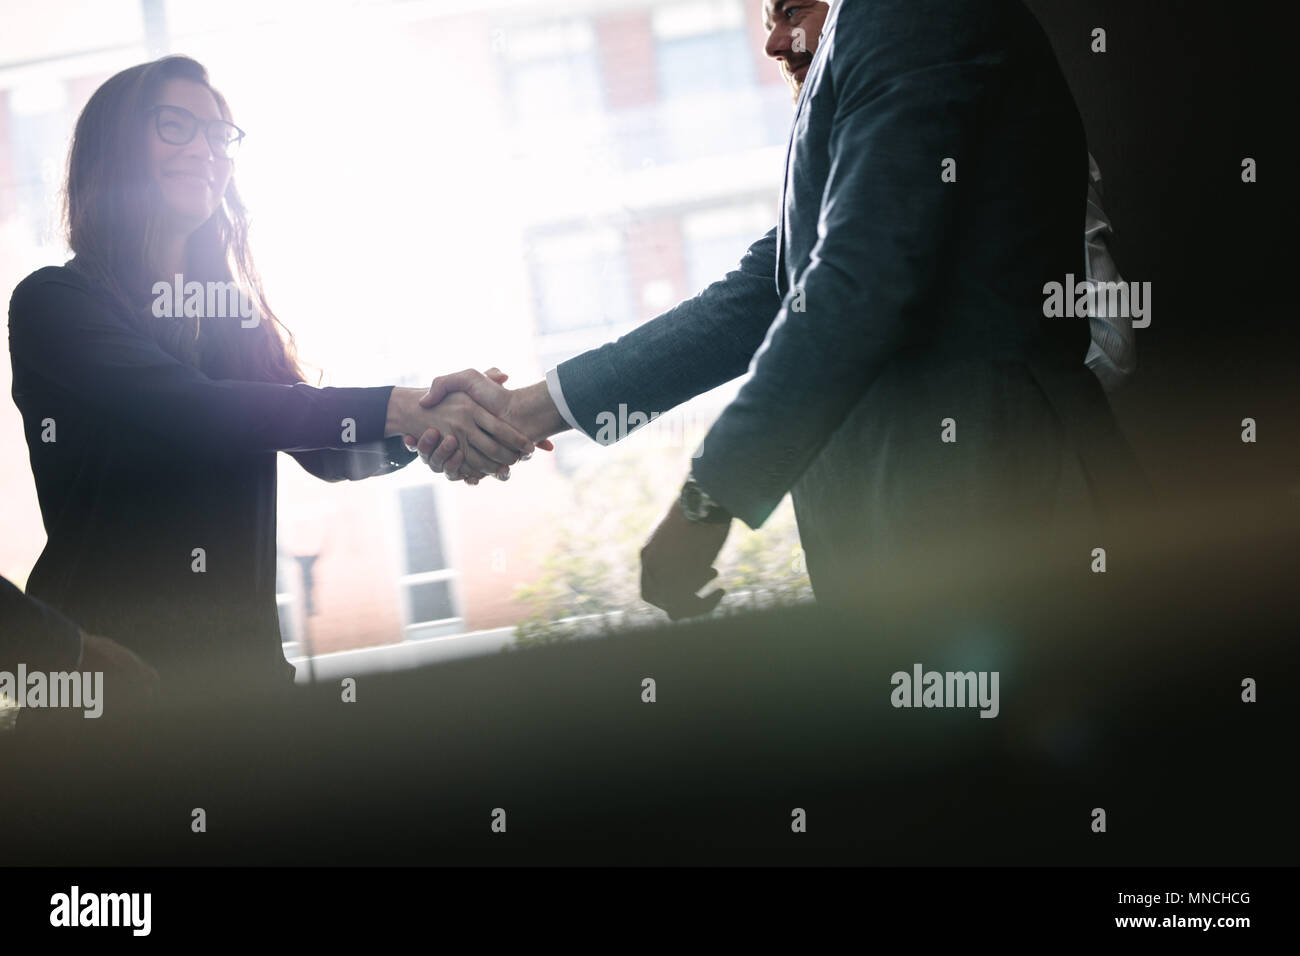 Businesswoman shaking hands with businessman after a successful agreement in office meeting. Businesspeople hand shake after a deal. - Stock Image